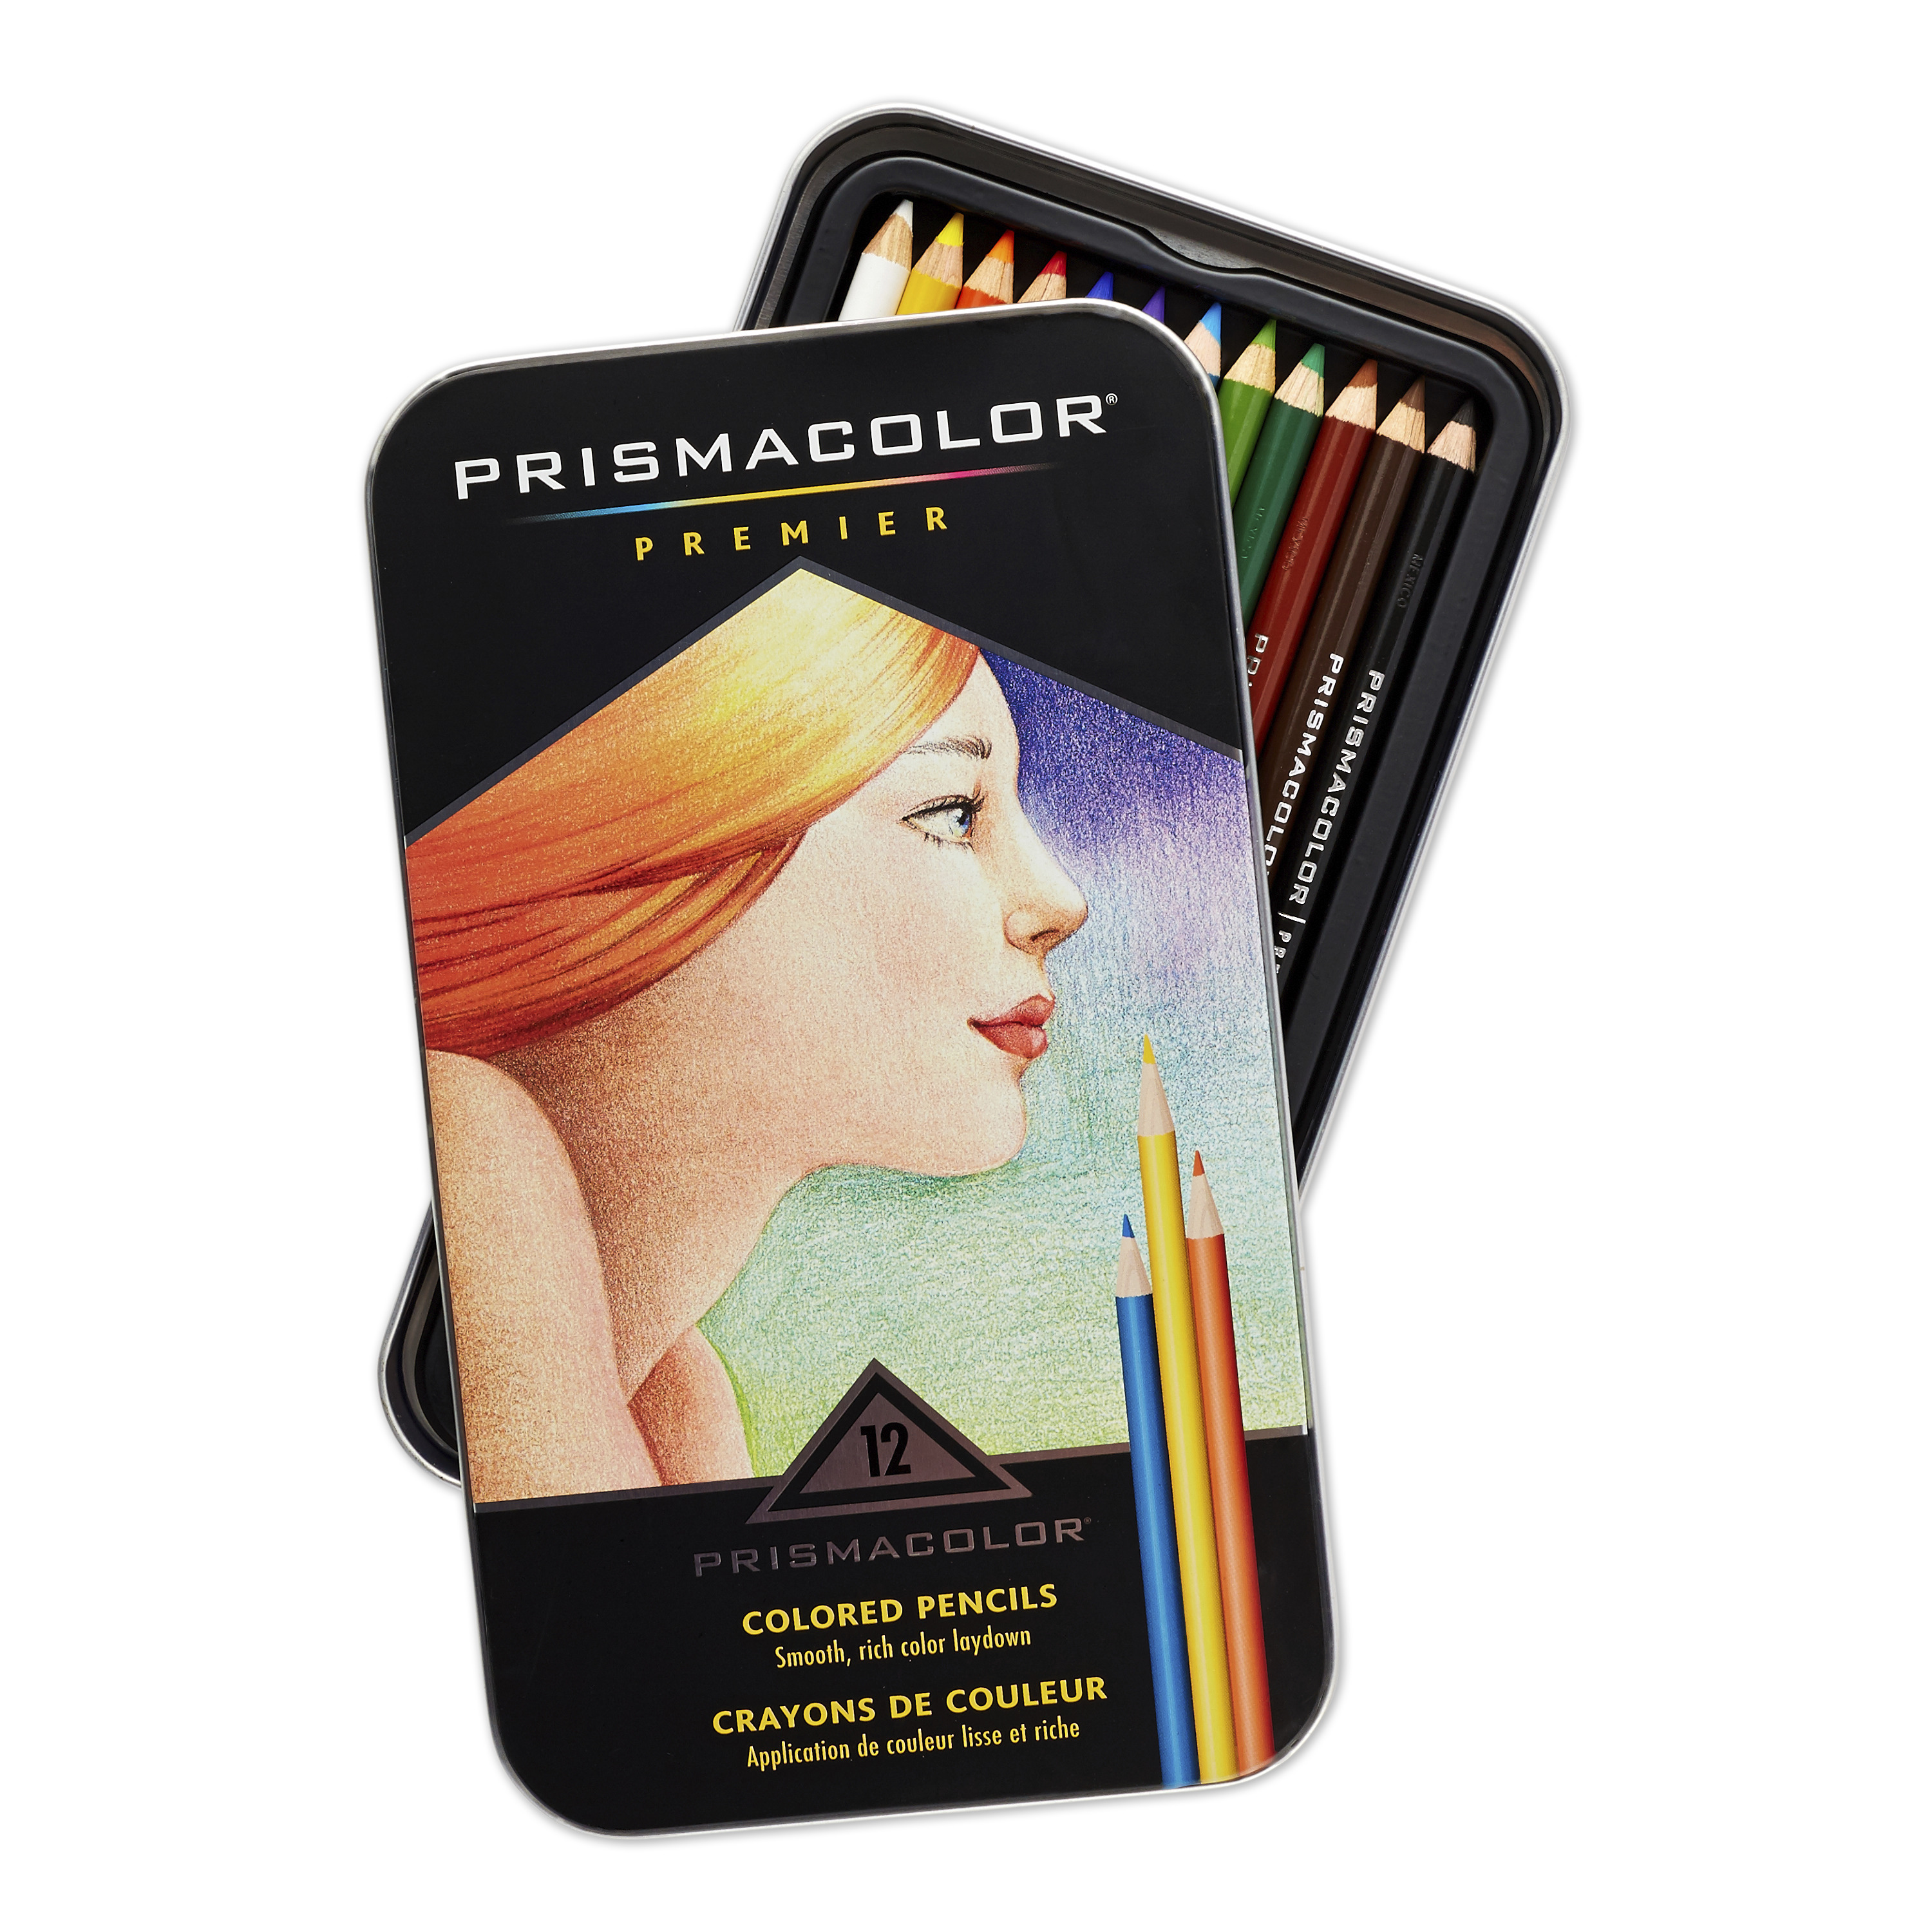 Prismacolor Premier Colored Pencils, Soft Core, 12 Pack